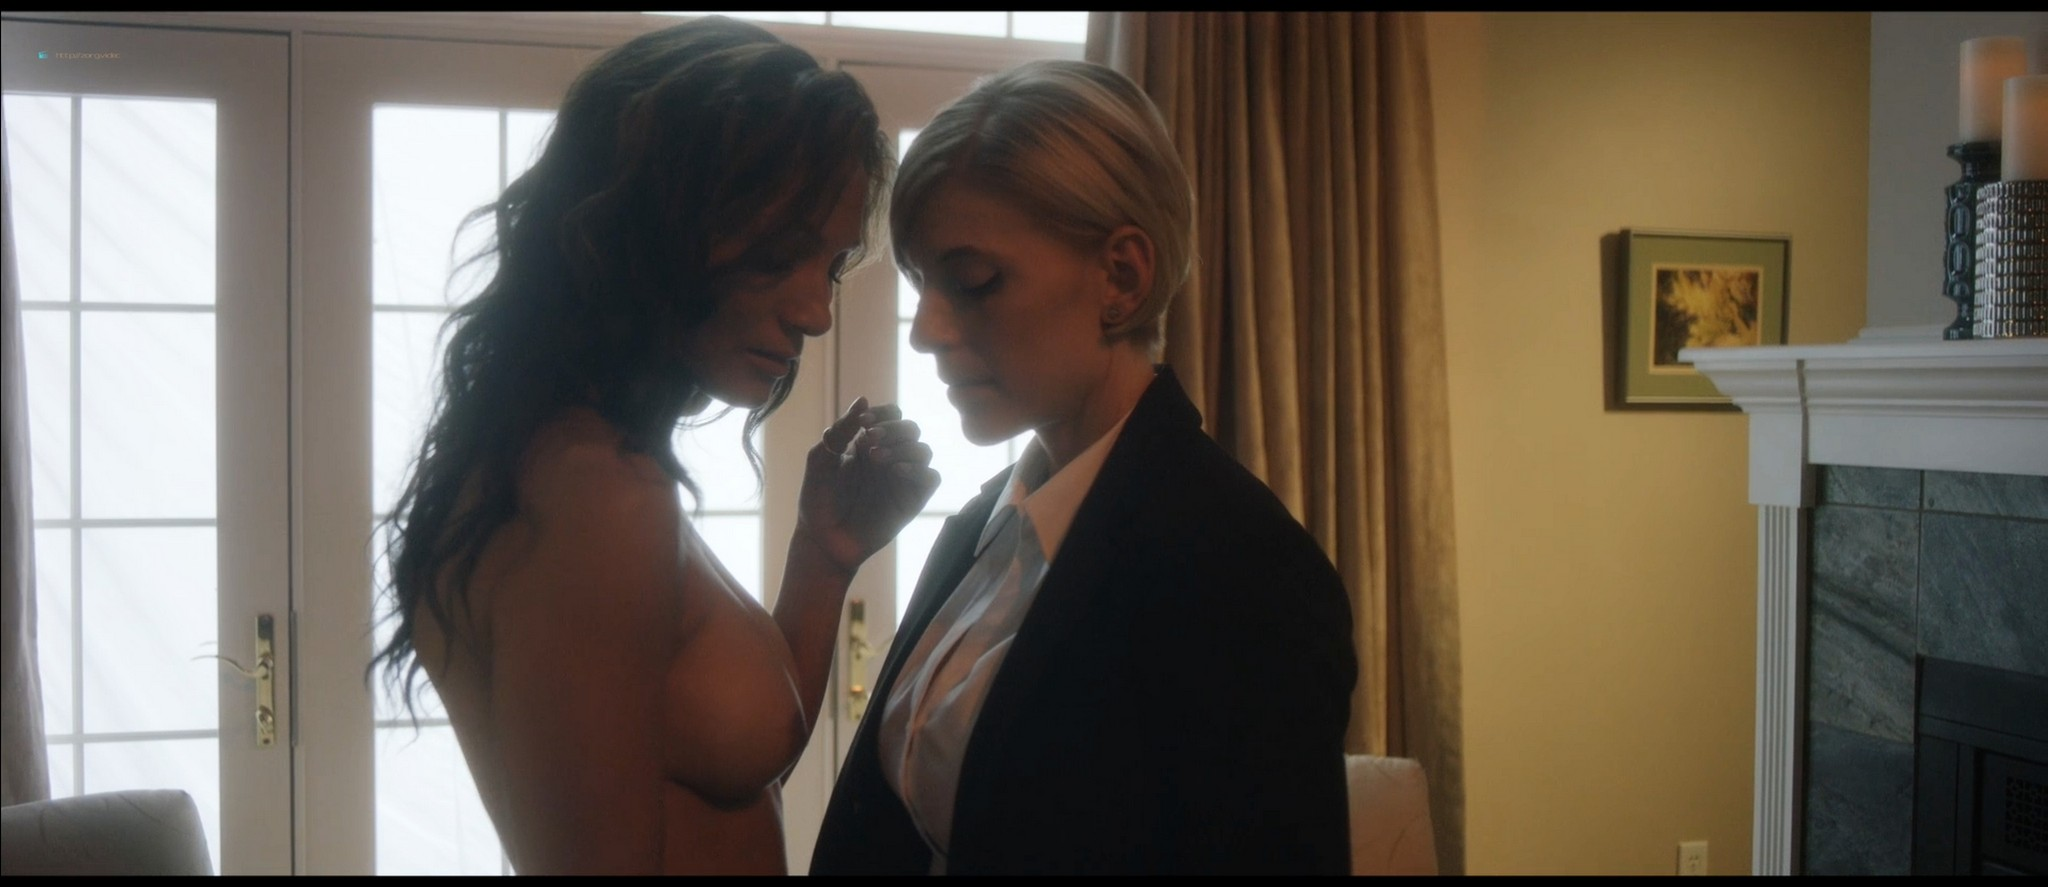 Melanie Brockmann Gaffney nude lesbian sex with Marem Hassler - Russian Doll (2016) HD 1080p Web (6)